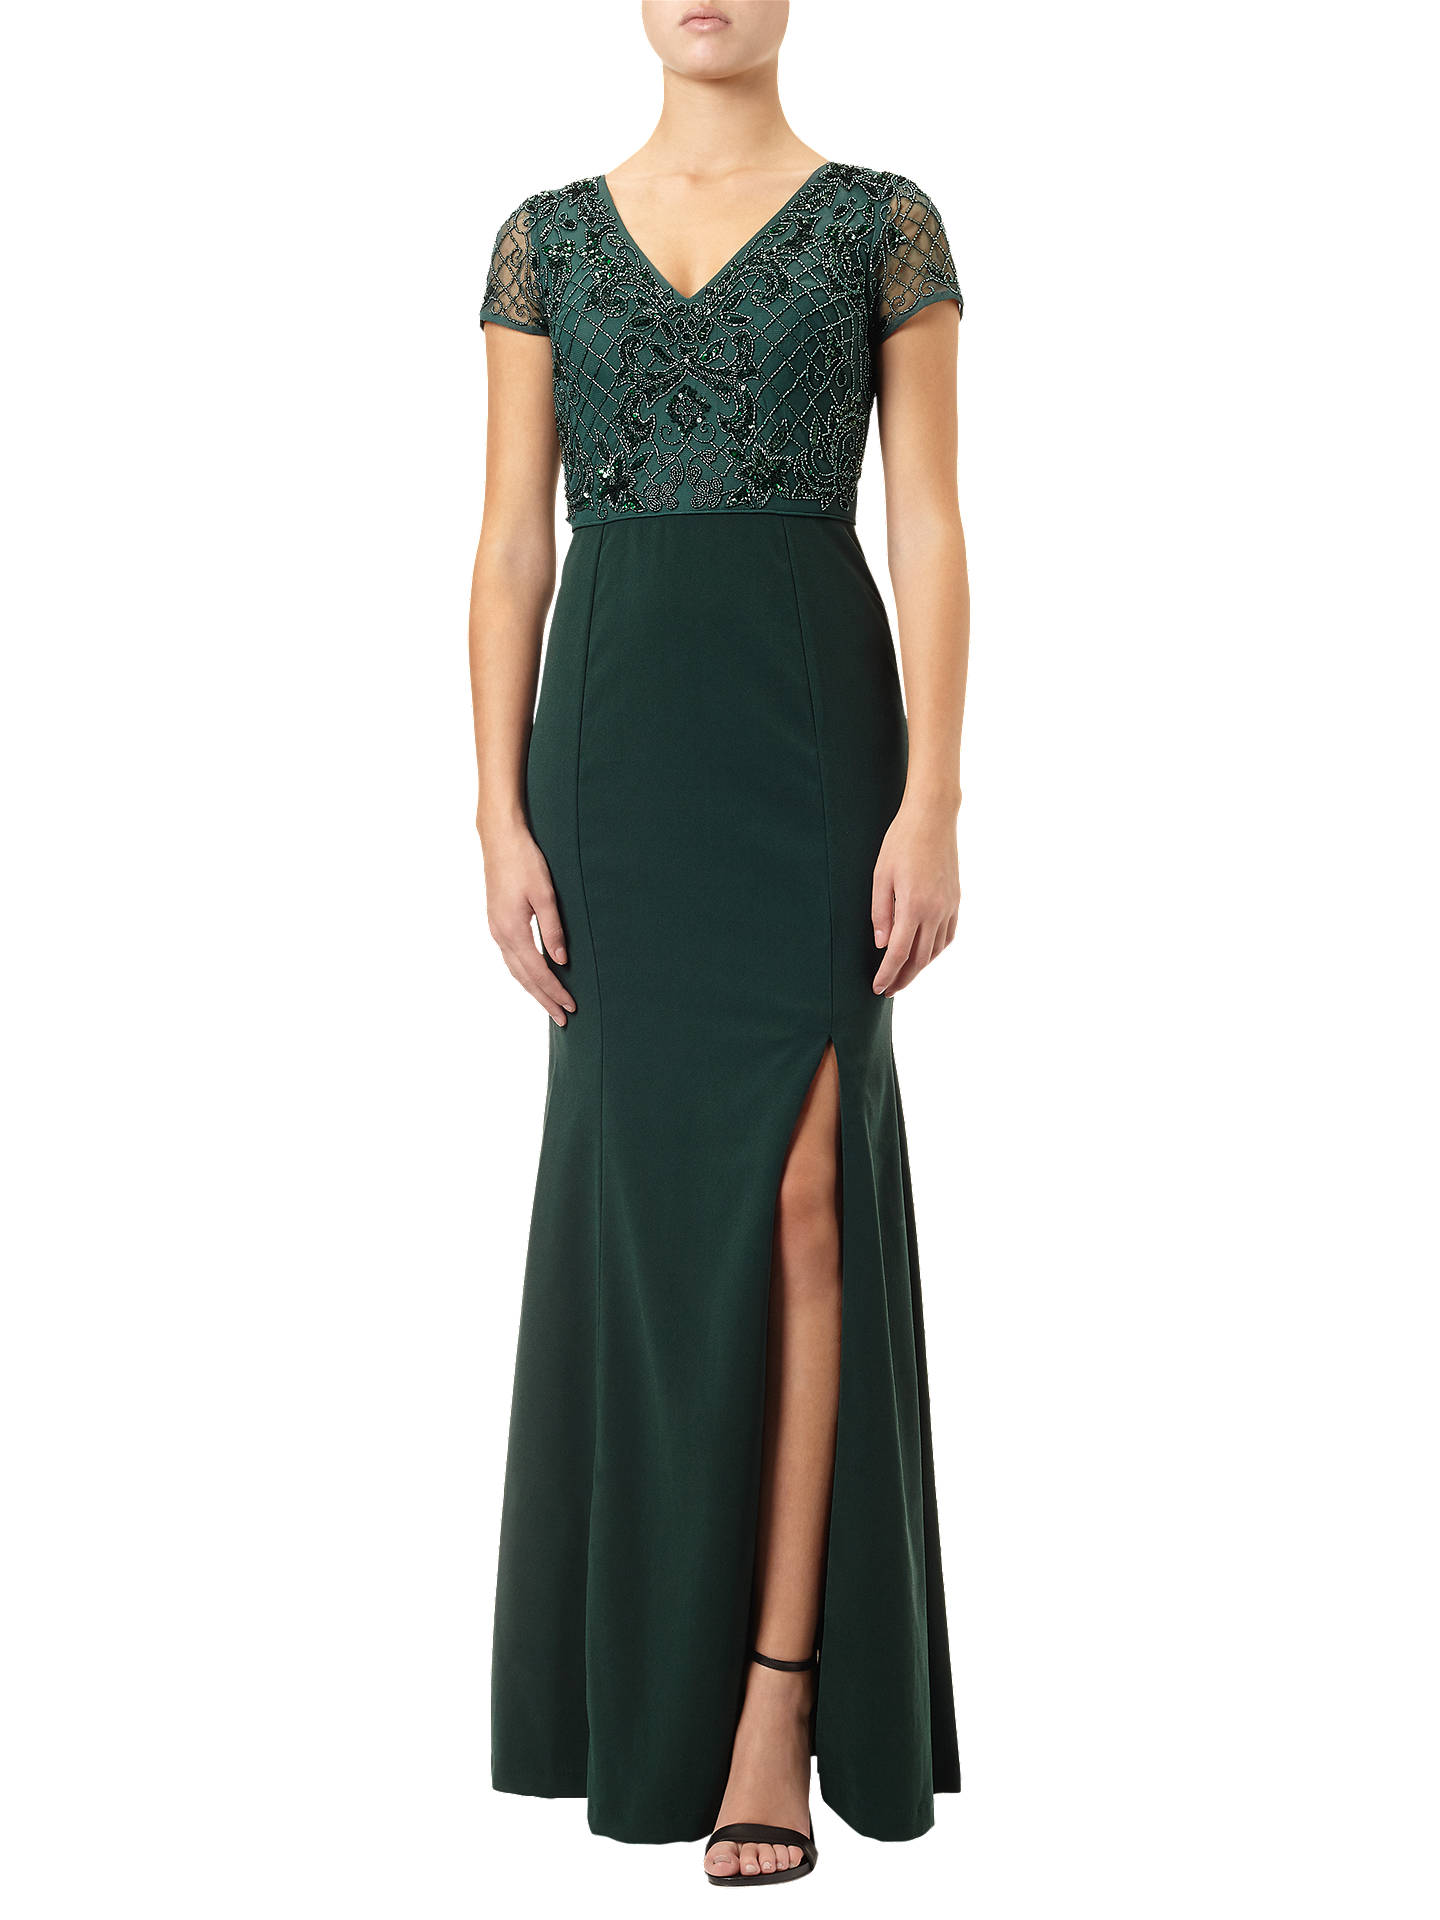 Adrianna Papell Plus Size Beaded Ball Gown, Emerald at John Lewis ...